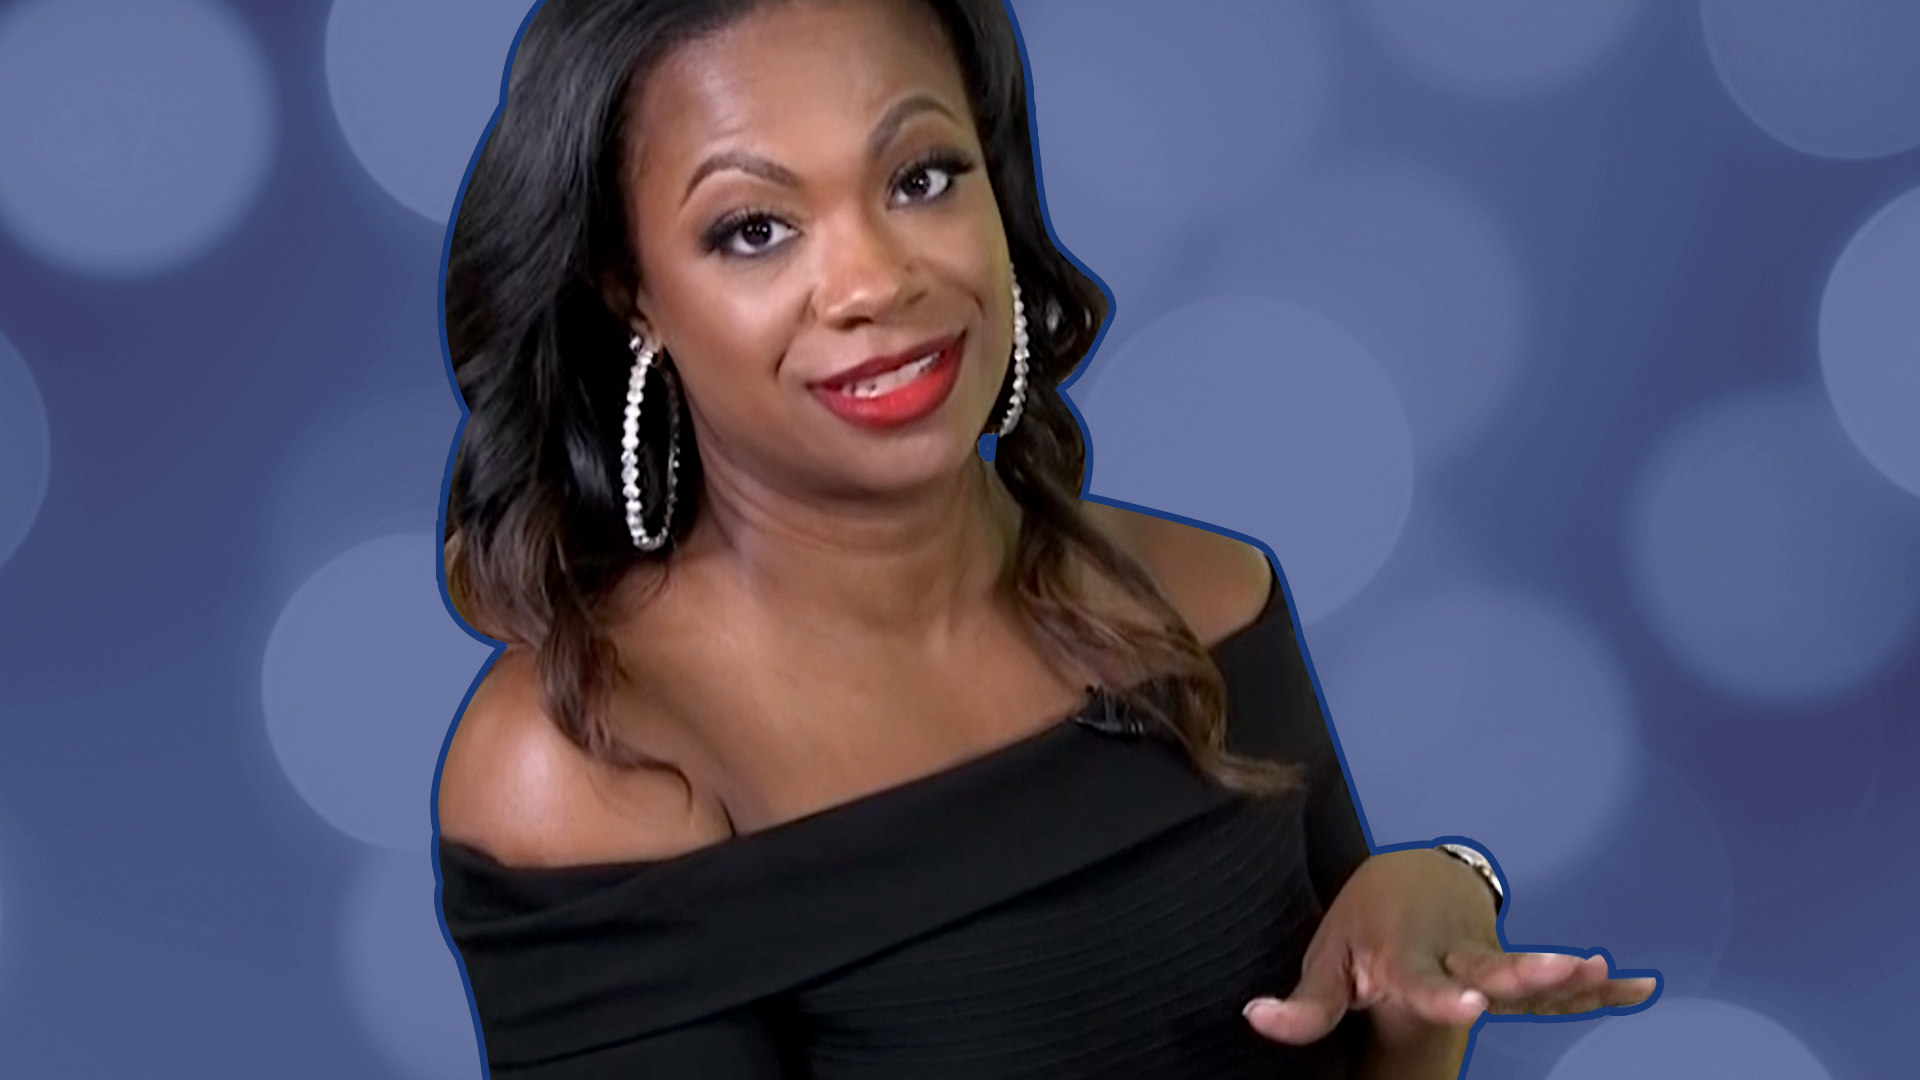 What Relationship Advice Does Kandi Burruss Have for Gizelle Bryant?